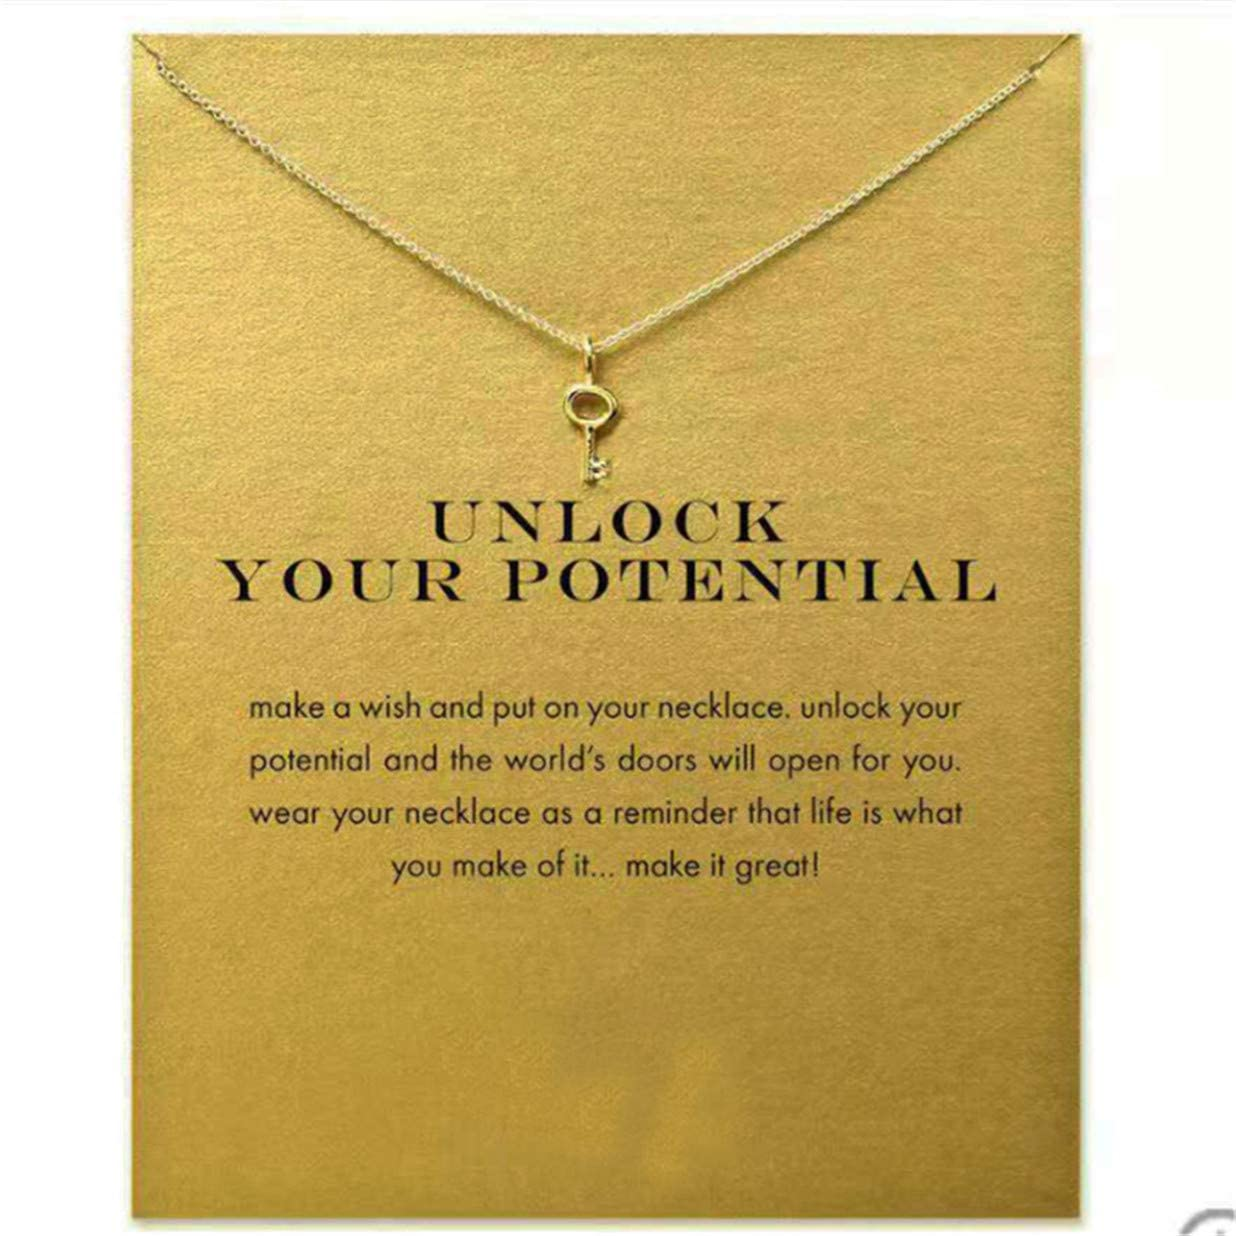 SEVENHOPE Women's Key Pendant Necklace - Simple Chic Dainty Choker Chain Short Necklace,Women Girlfriend Daughter Gift (with Card)